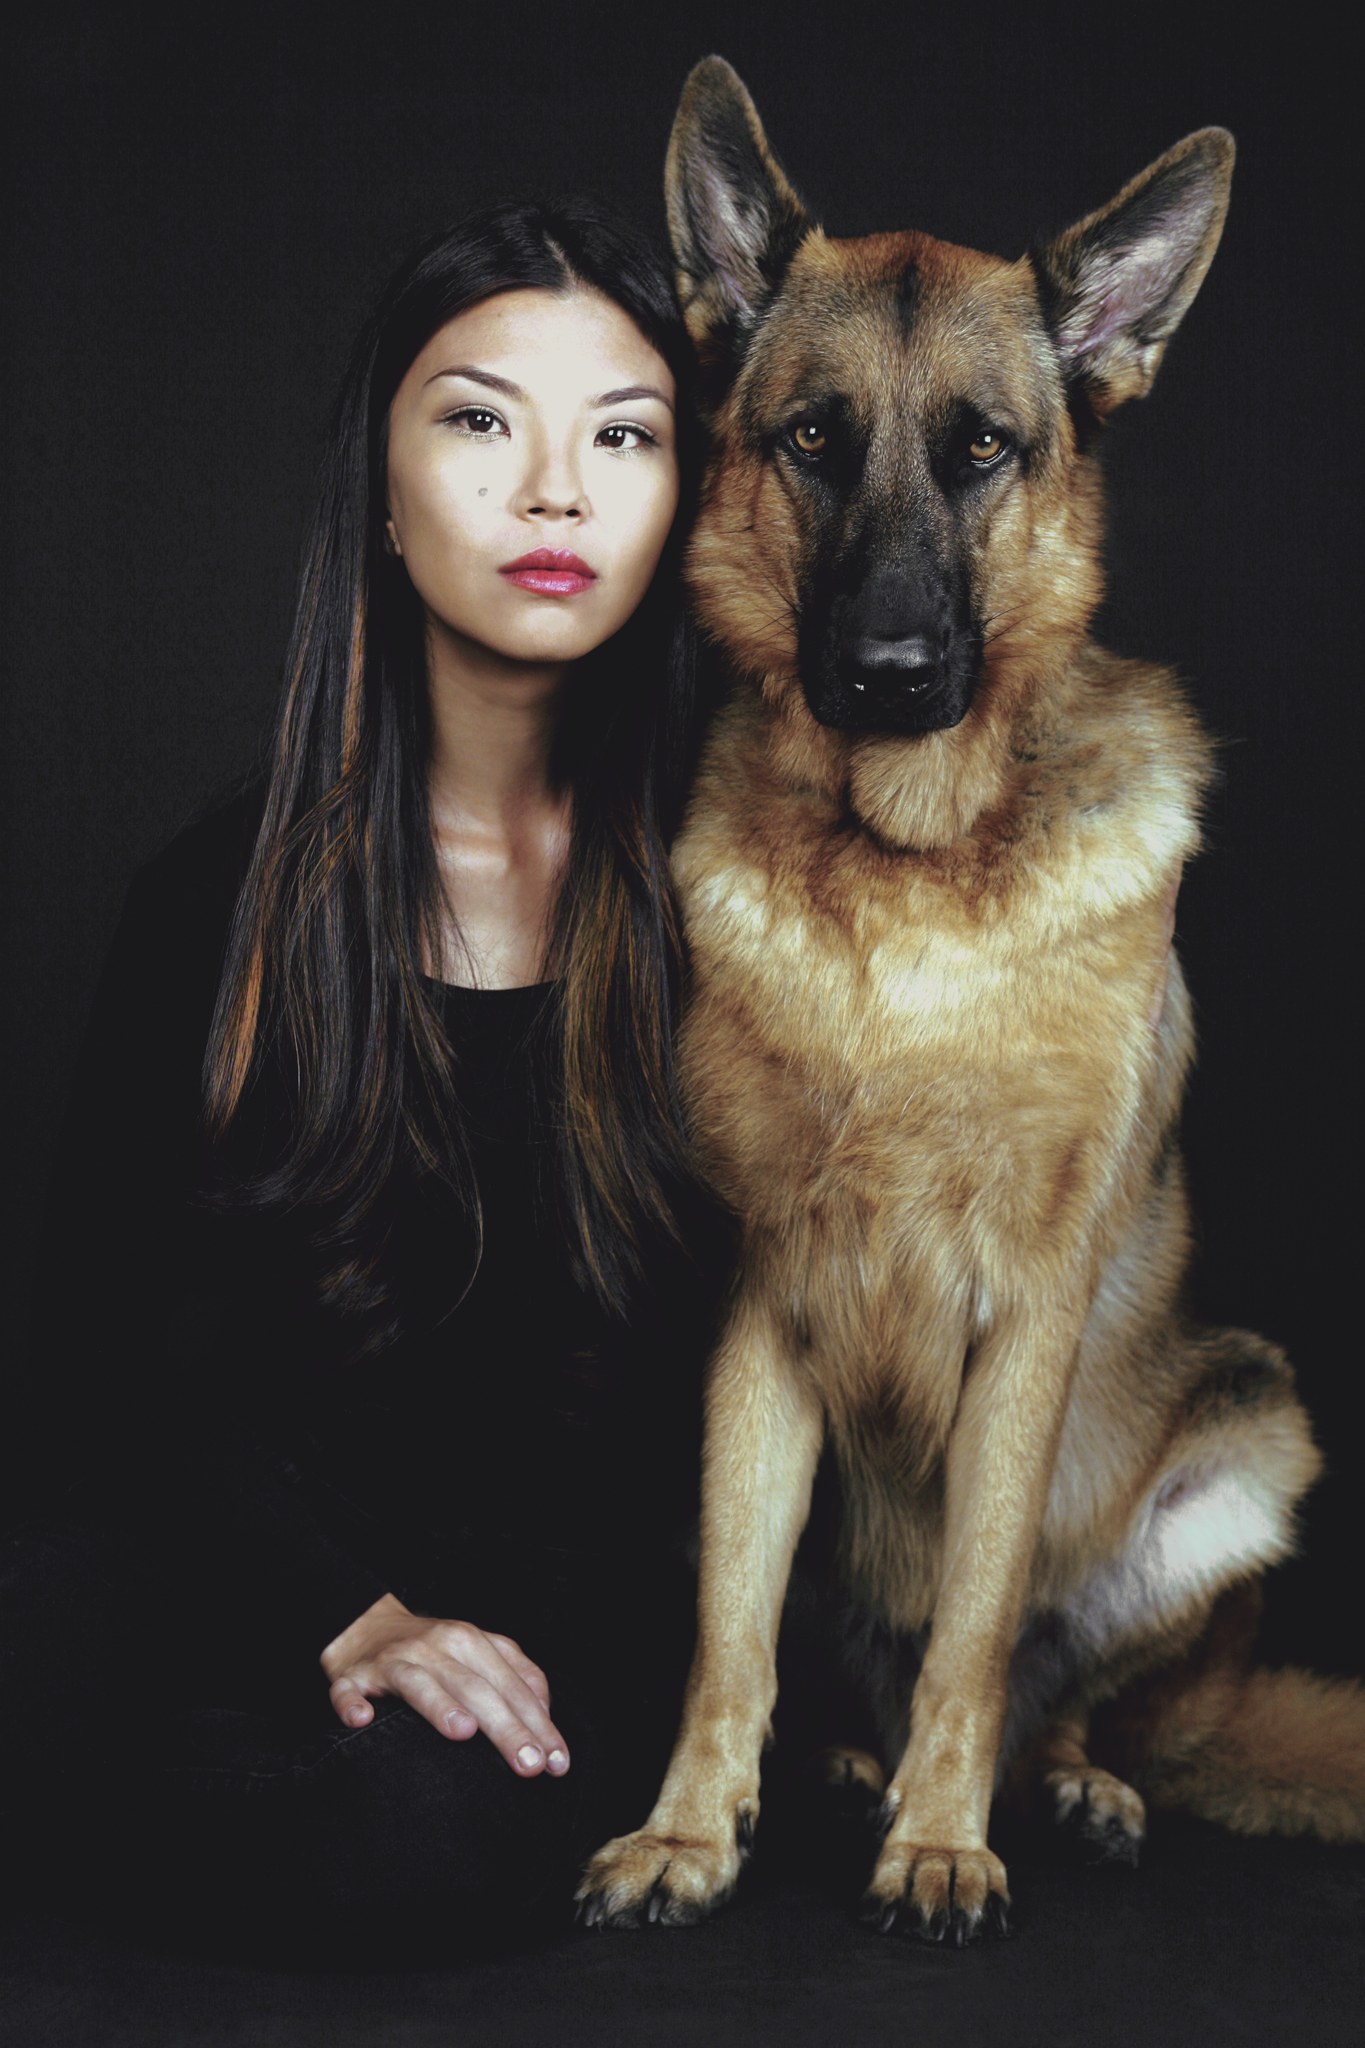 With my muse, MaQ, my German shepherd dog.  ©  Gilles Decamps